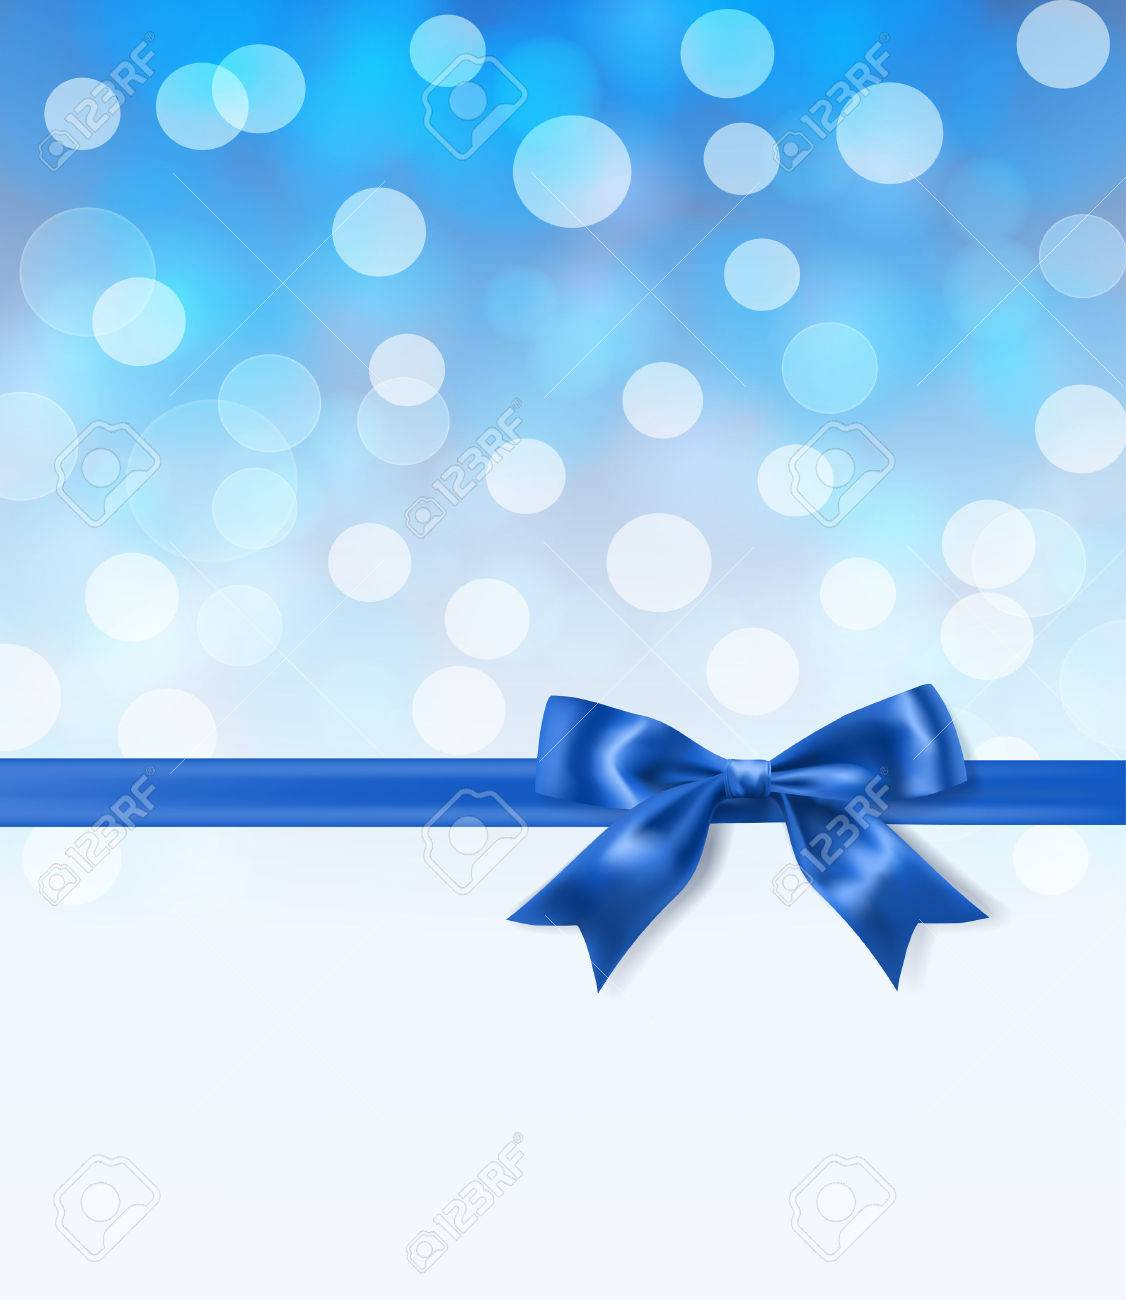 royal blue silky bow and ribbon border on light effects blurry background. vector illustration - 63080190